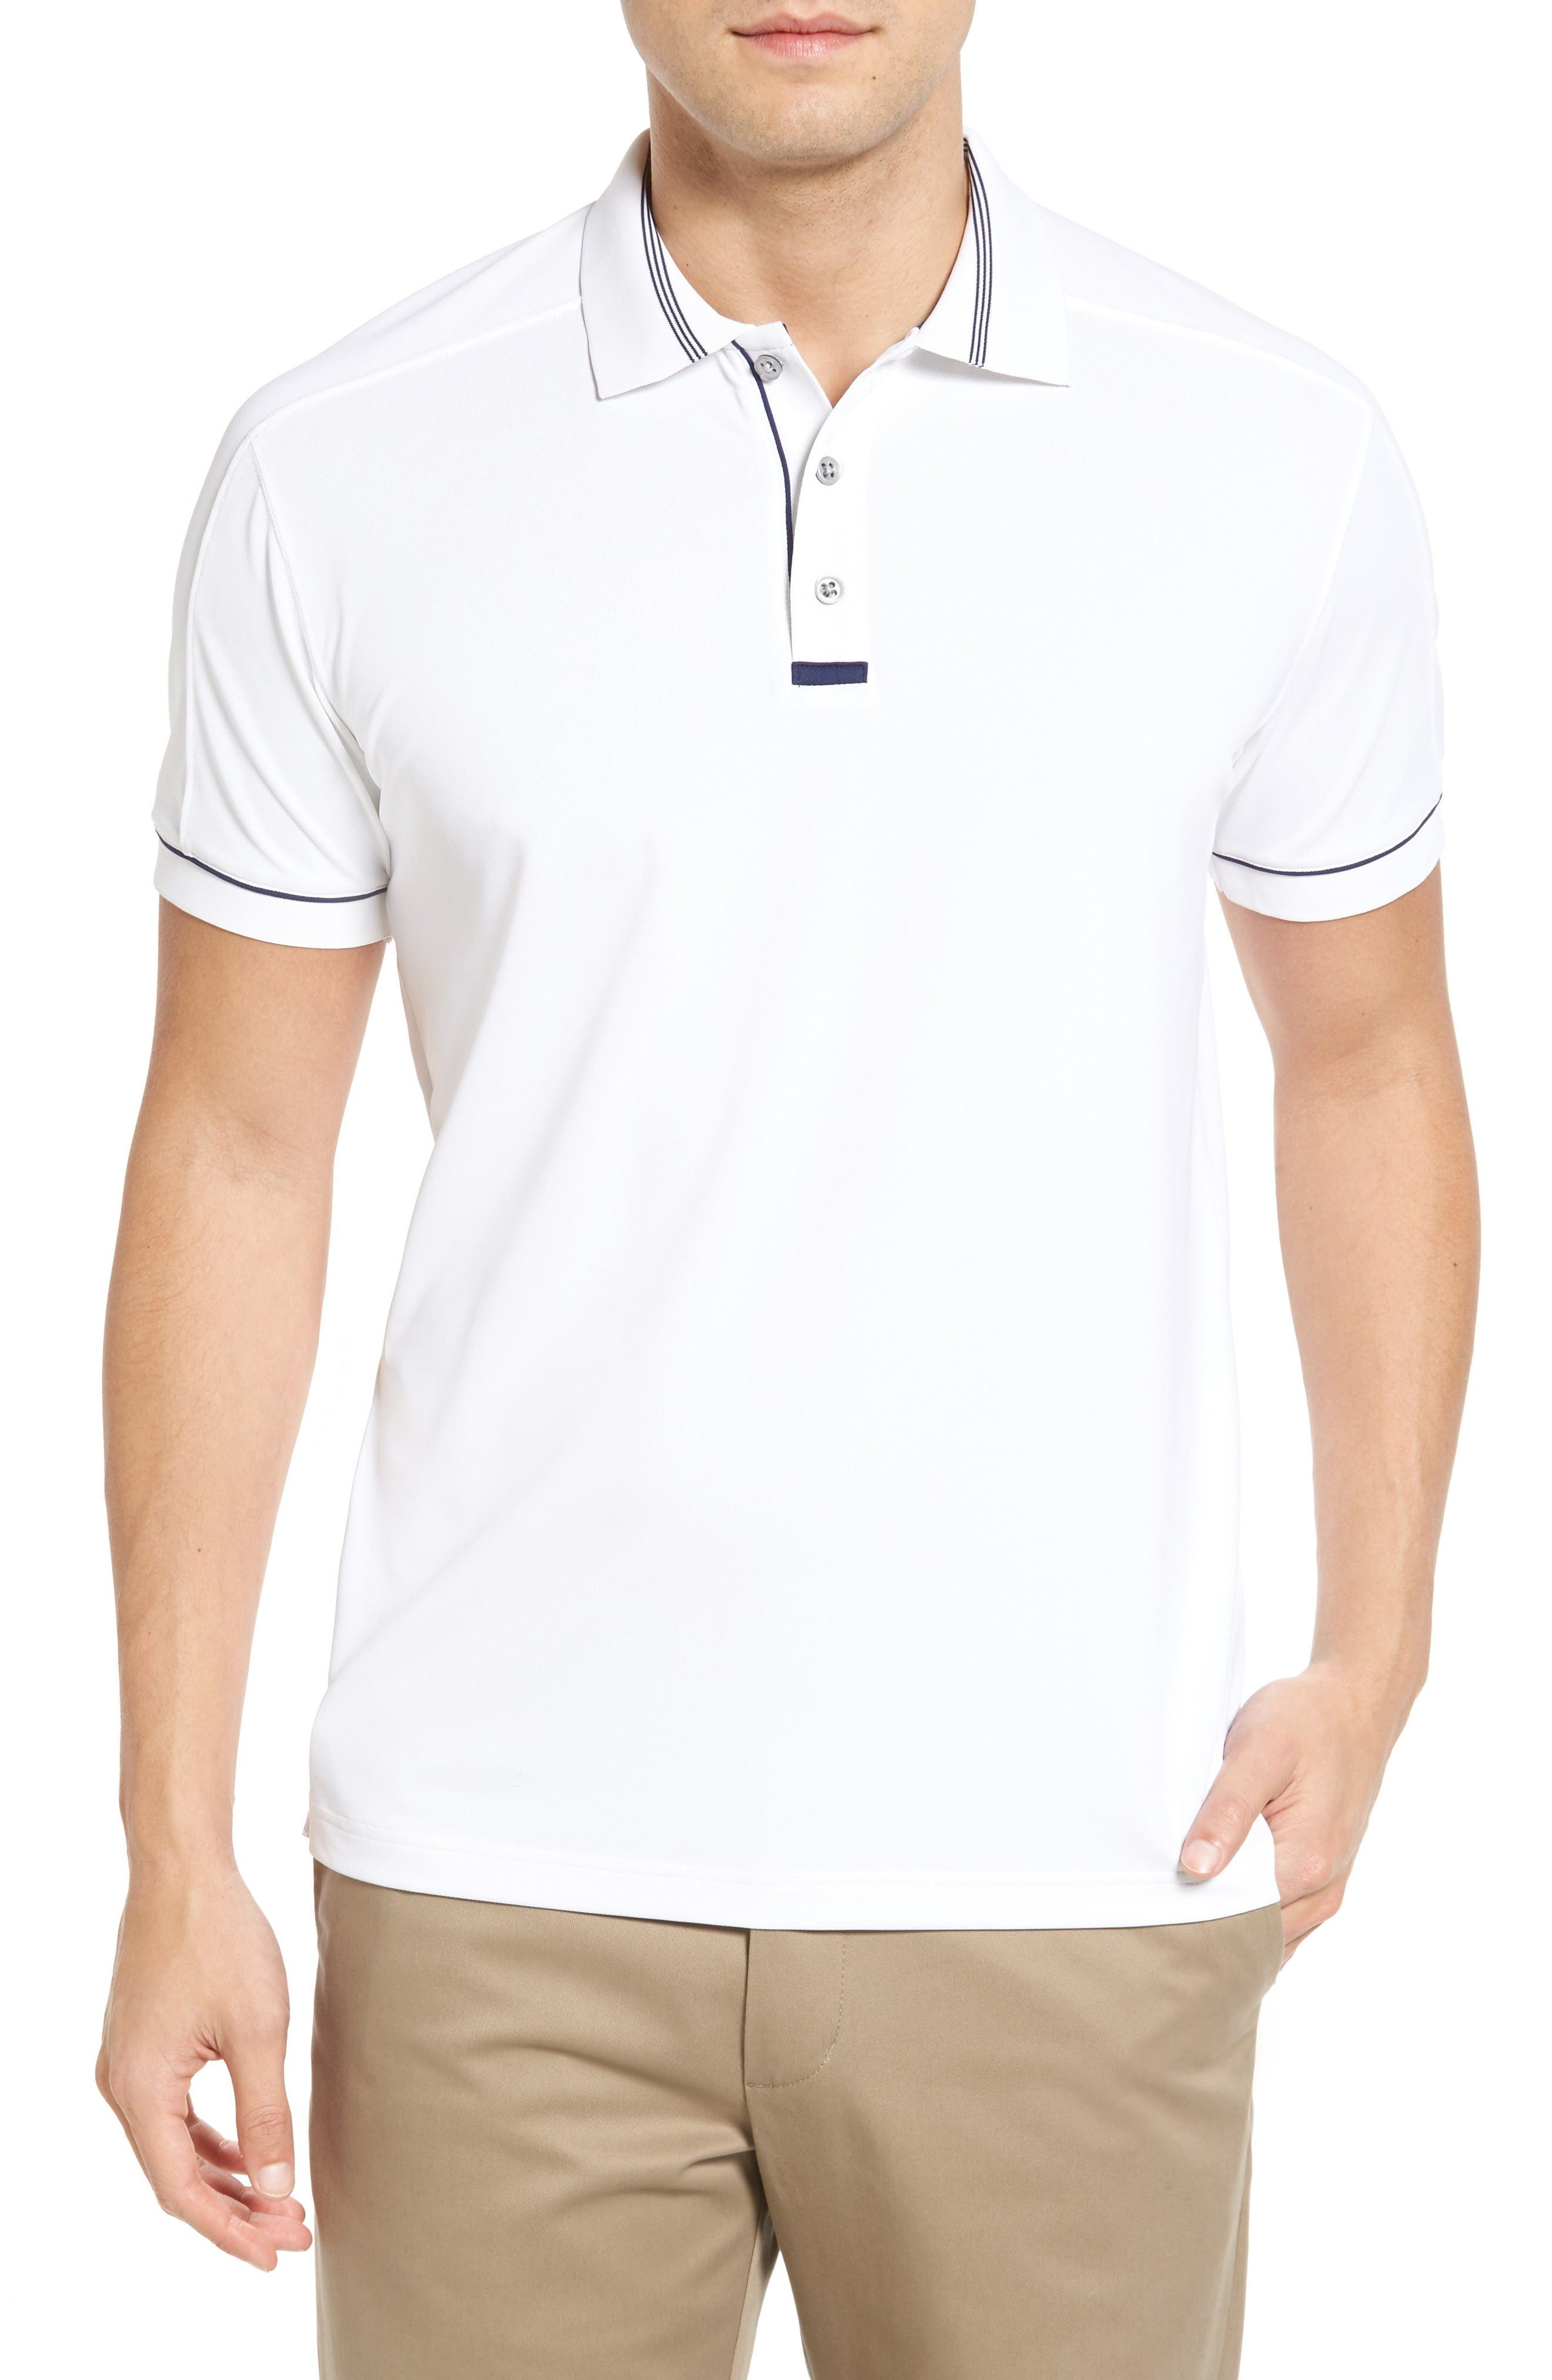 Bobby Jones Tech Piqué Golf Polo